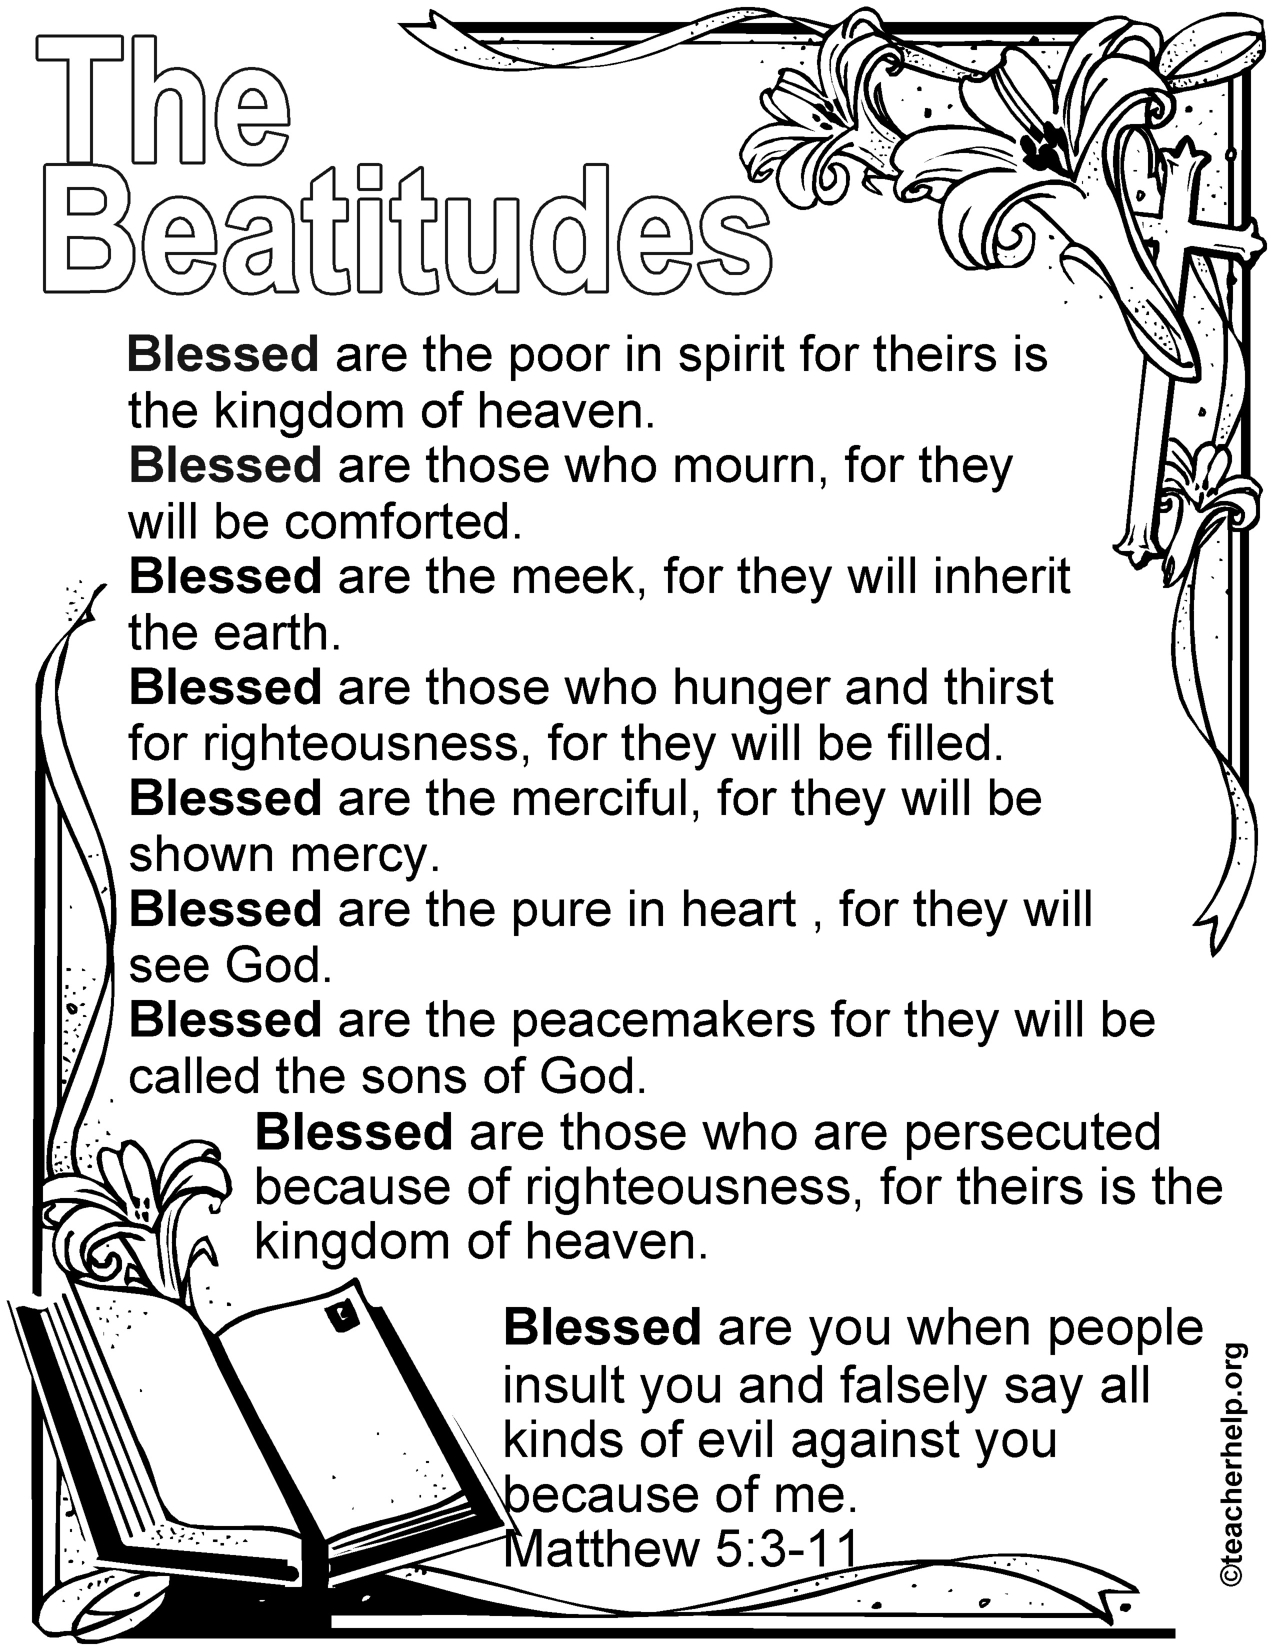 Image Result For Beatitudes For Kids Free Printable | Kids - Free Printable Children's Bible Lessons